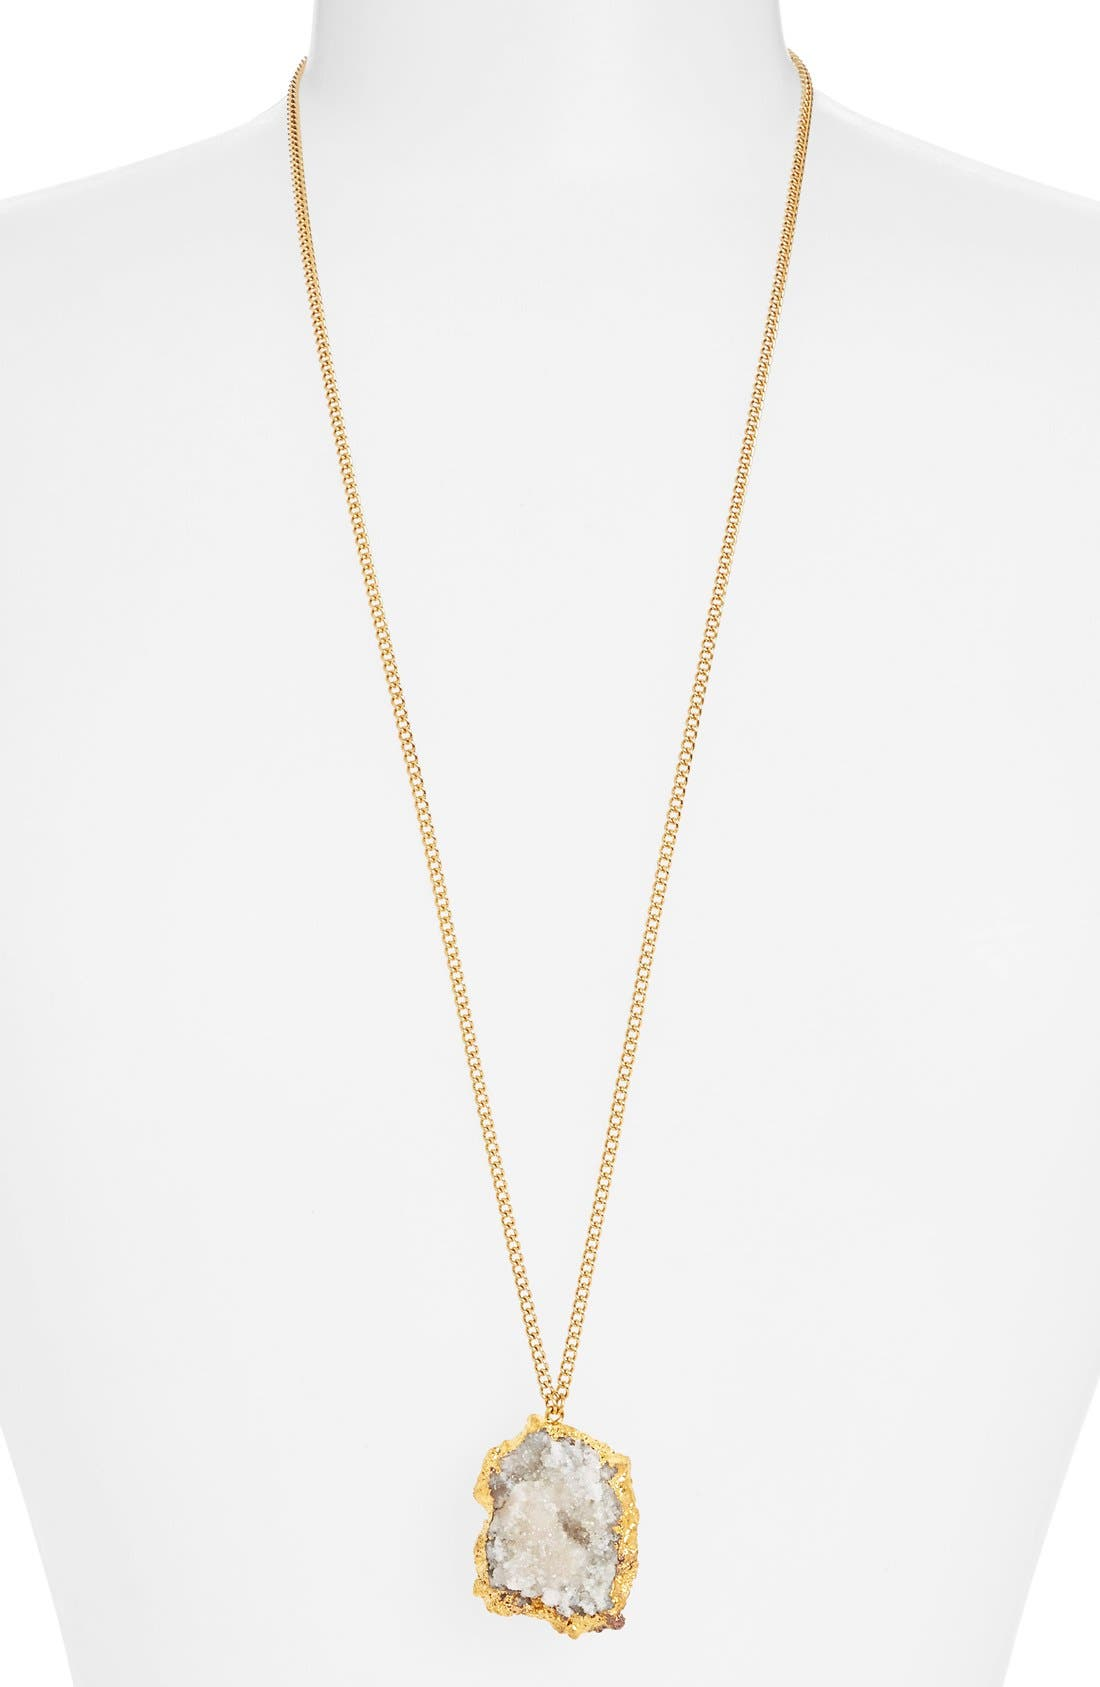 Main Image - Nordstrom 'Sorcerer's Stone' Long Drusy Pendant Necklace